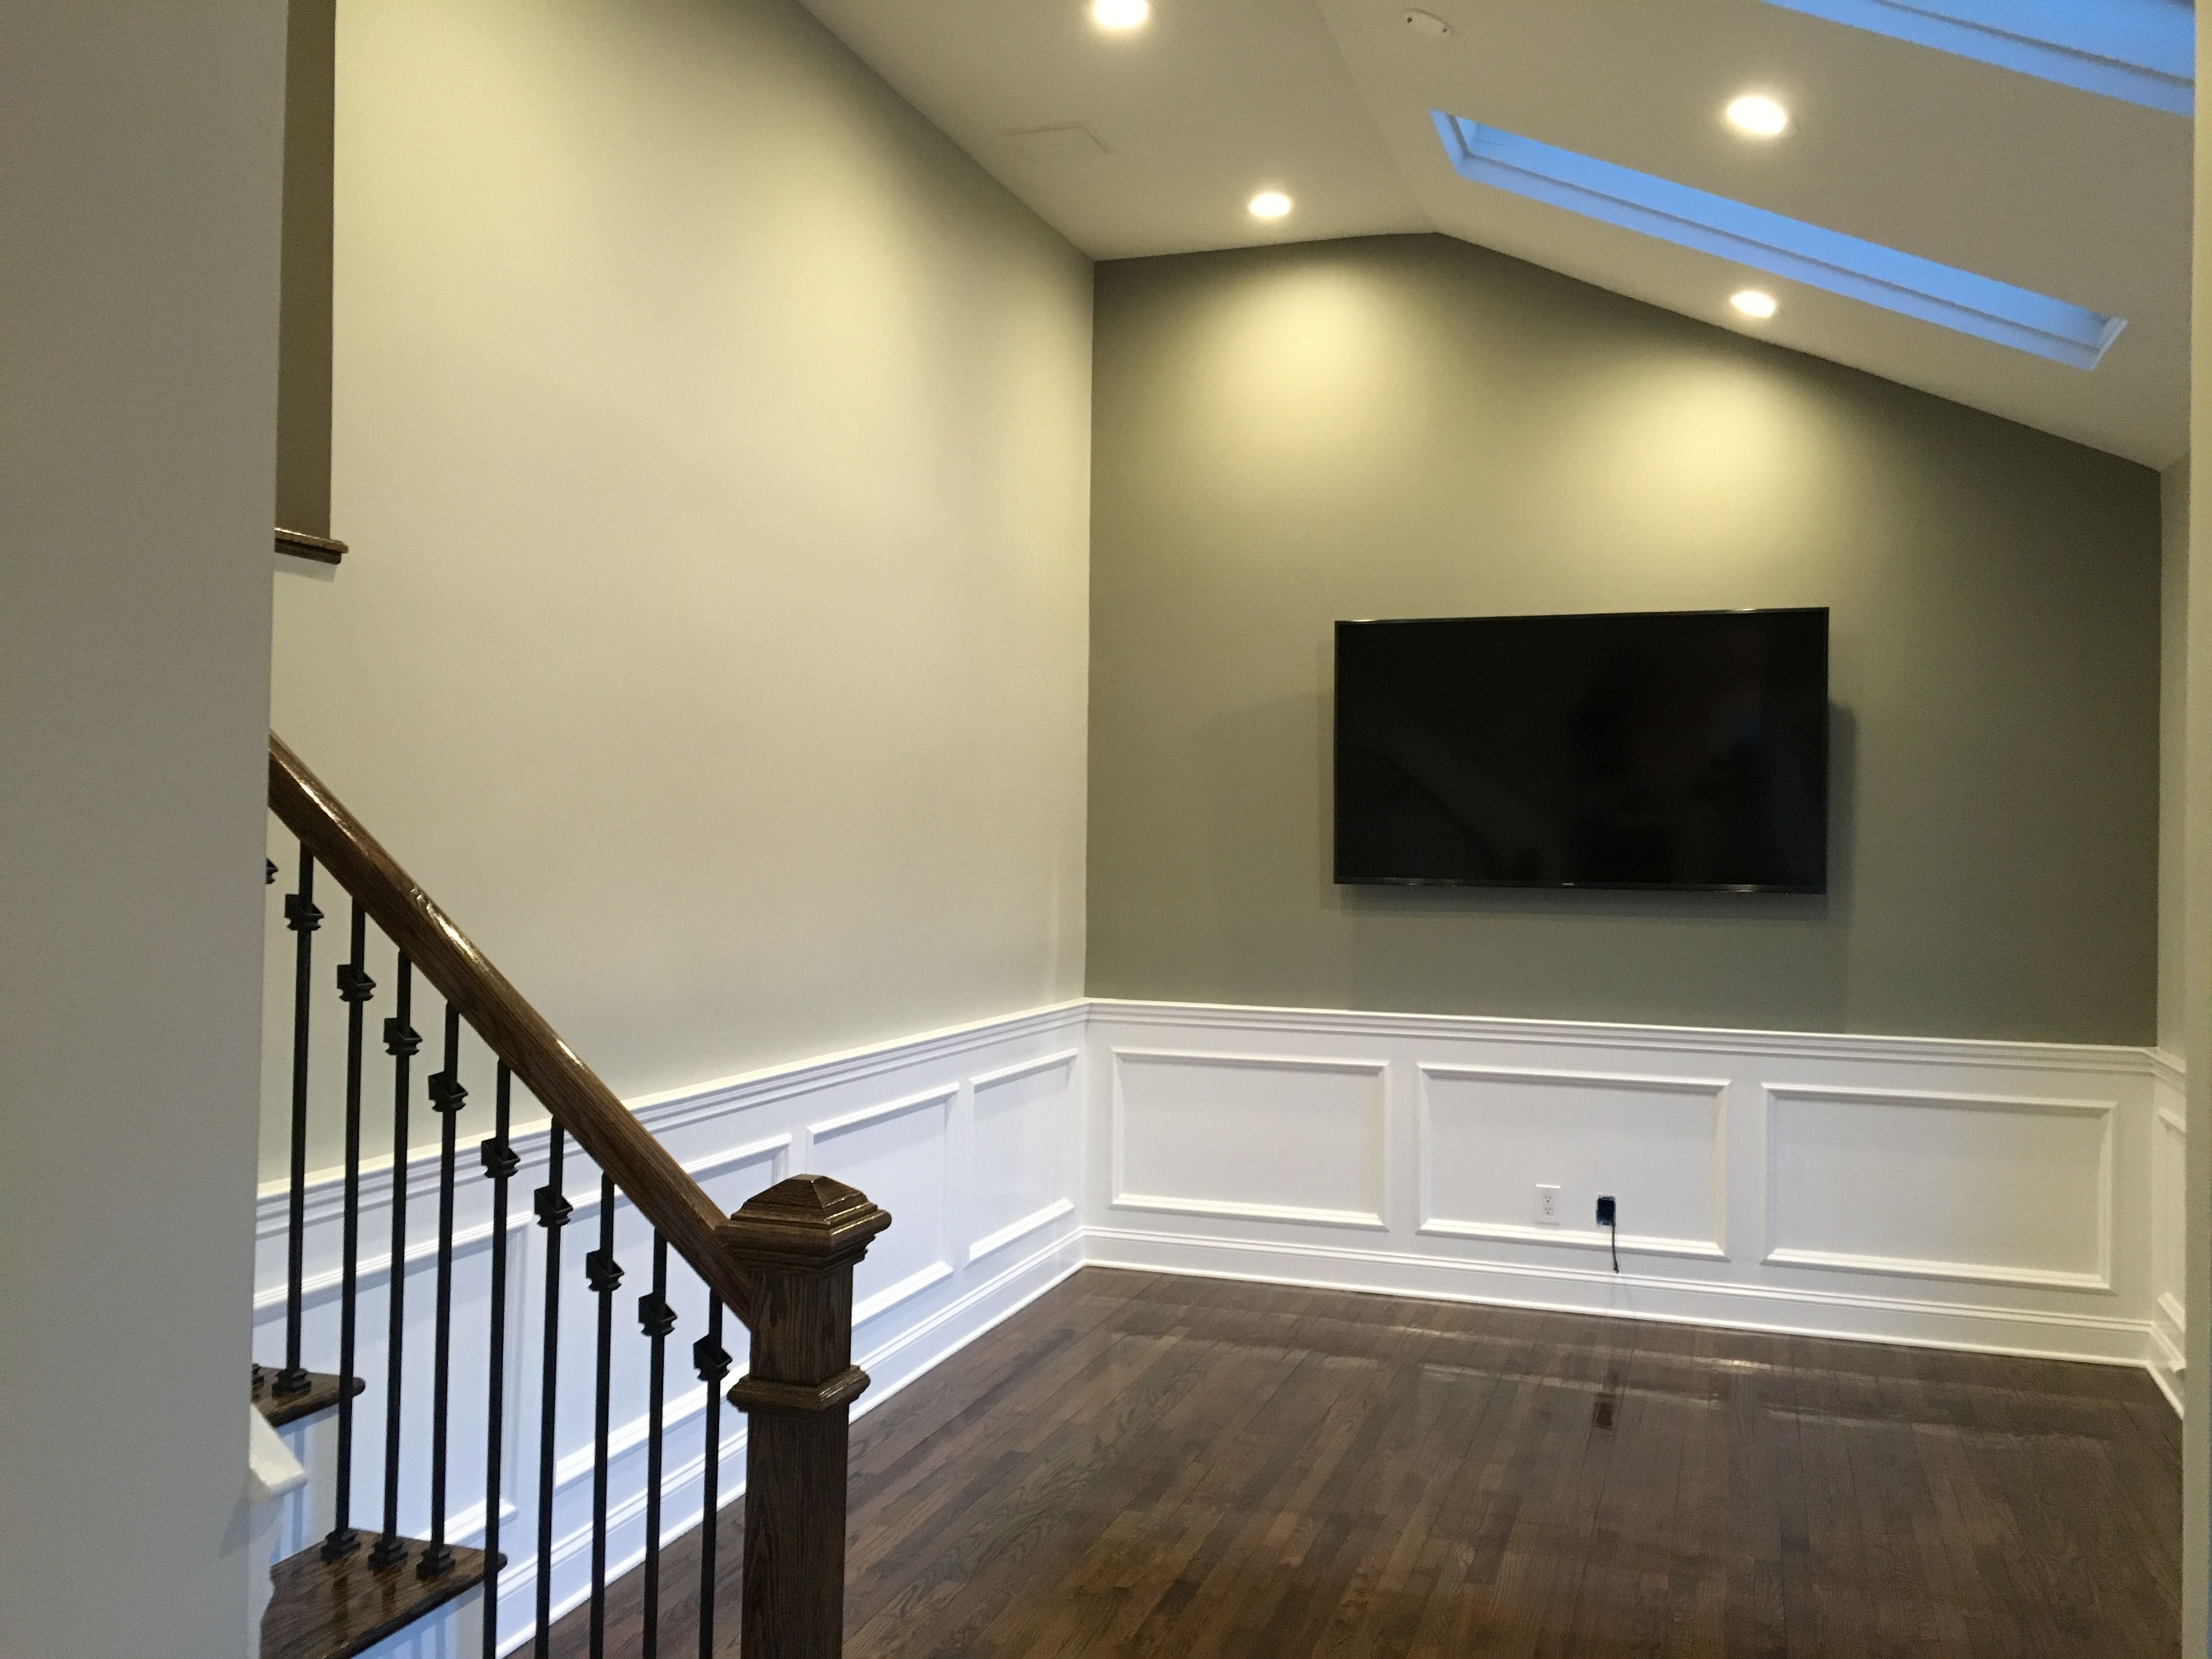 Benjamin Moore (1557) Silver Song; Accent Wall (1559) Arctic Shadows Trim